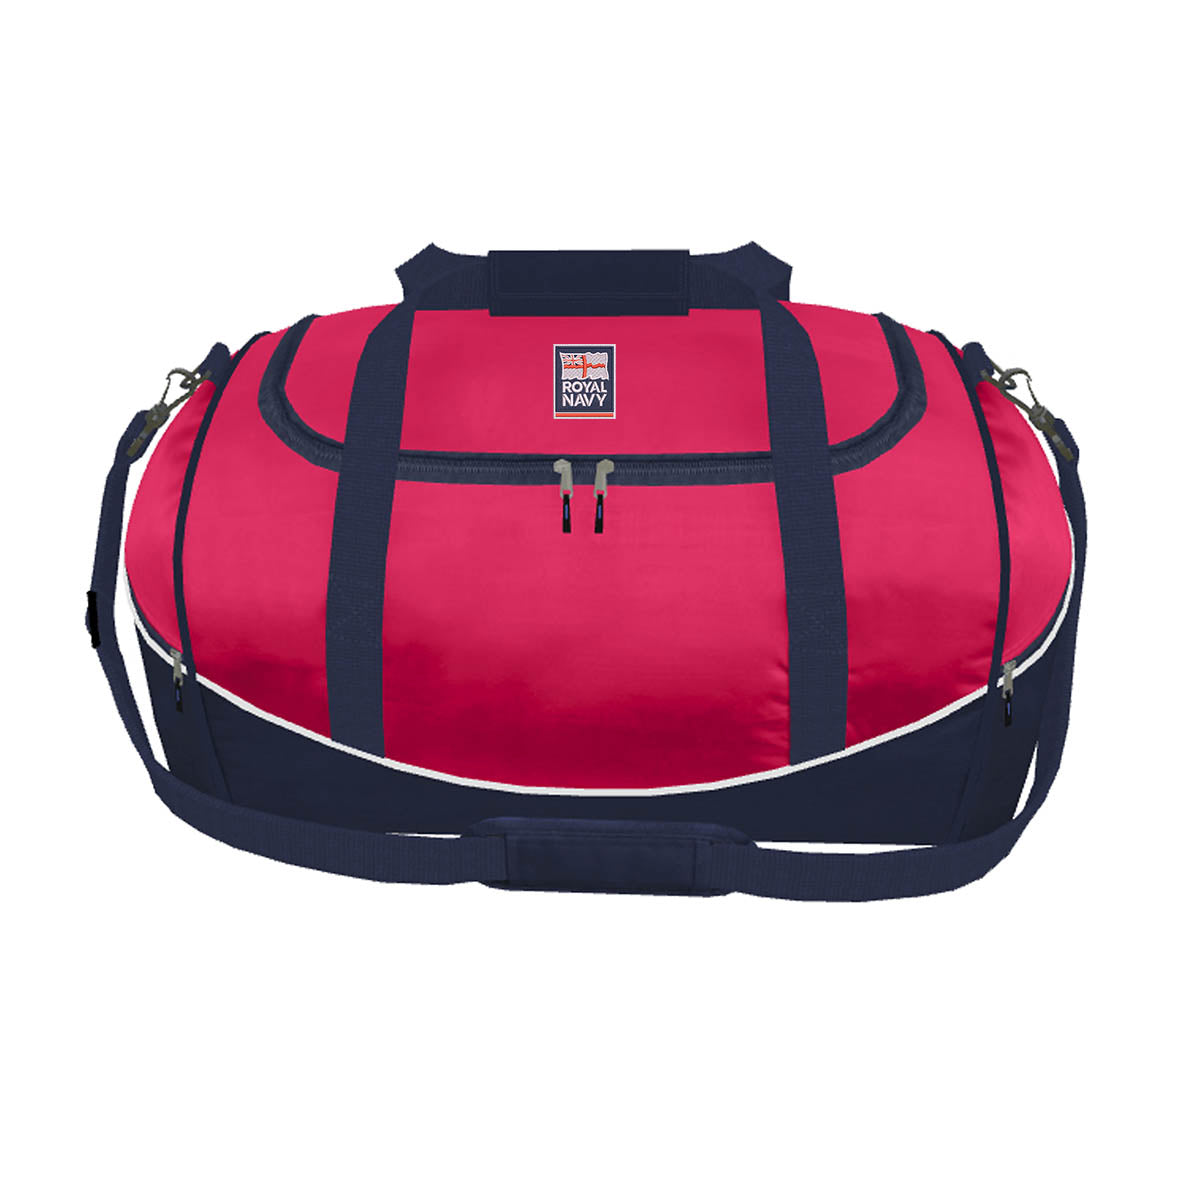 Royal Navy Teamwear Holdall Bag — The Military Store 2b563e410